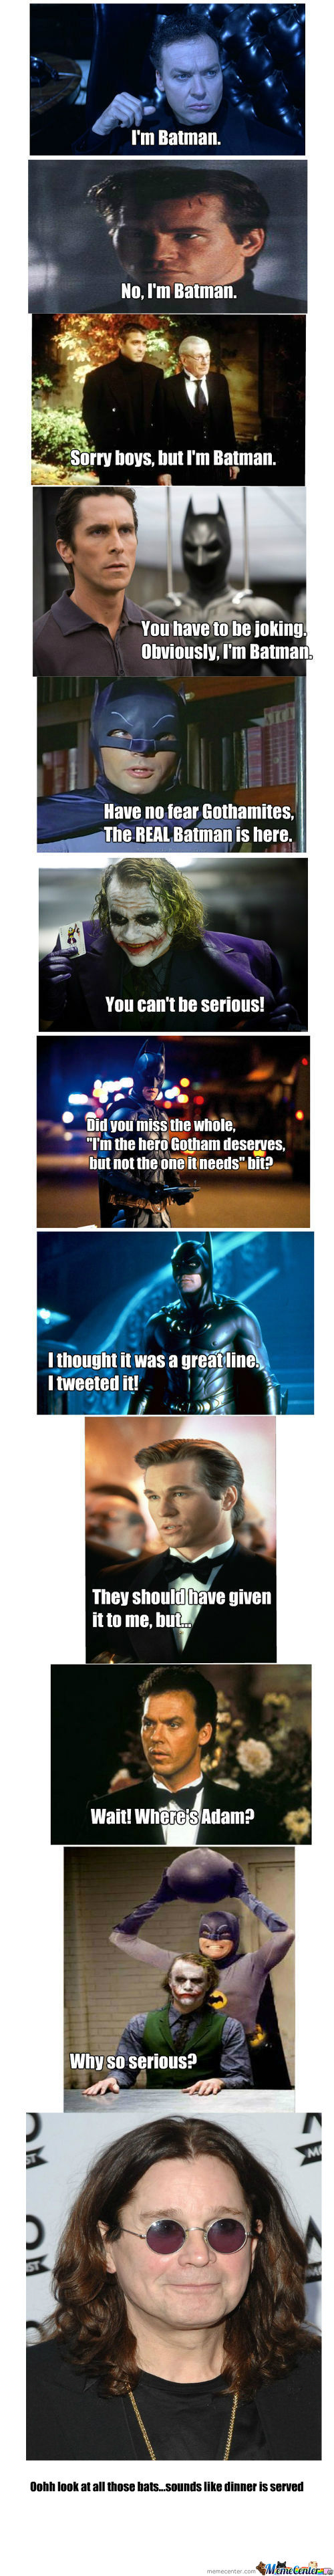 [RMX] Batman Debate